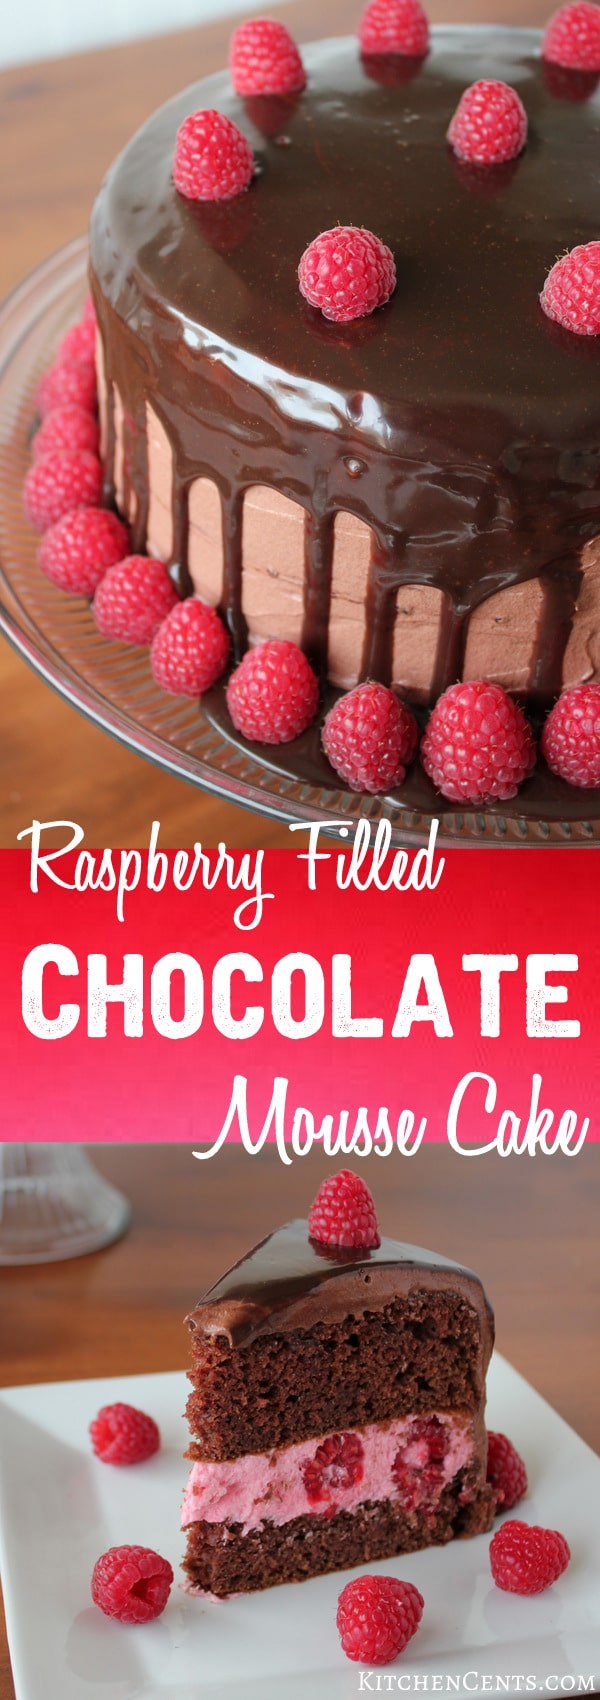 Raspberry Filled Chocolate Mousse Cake | KitchenCents.com